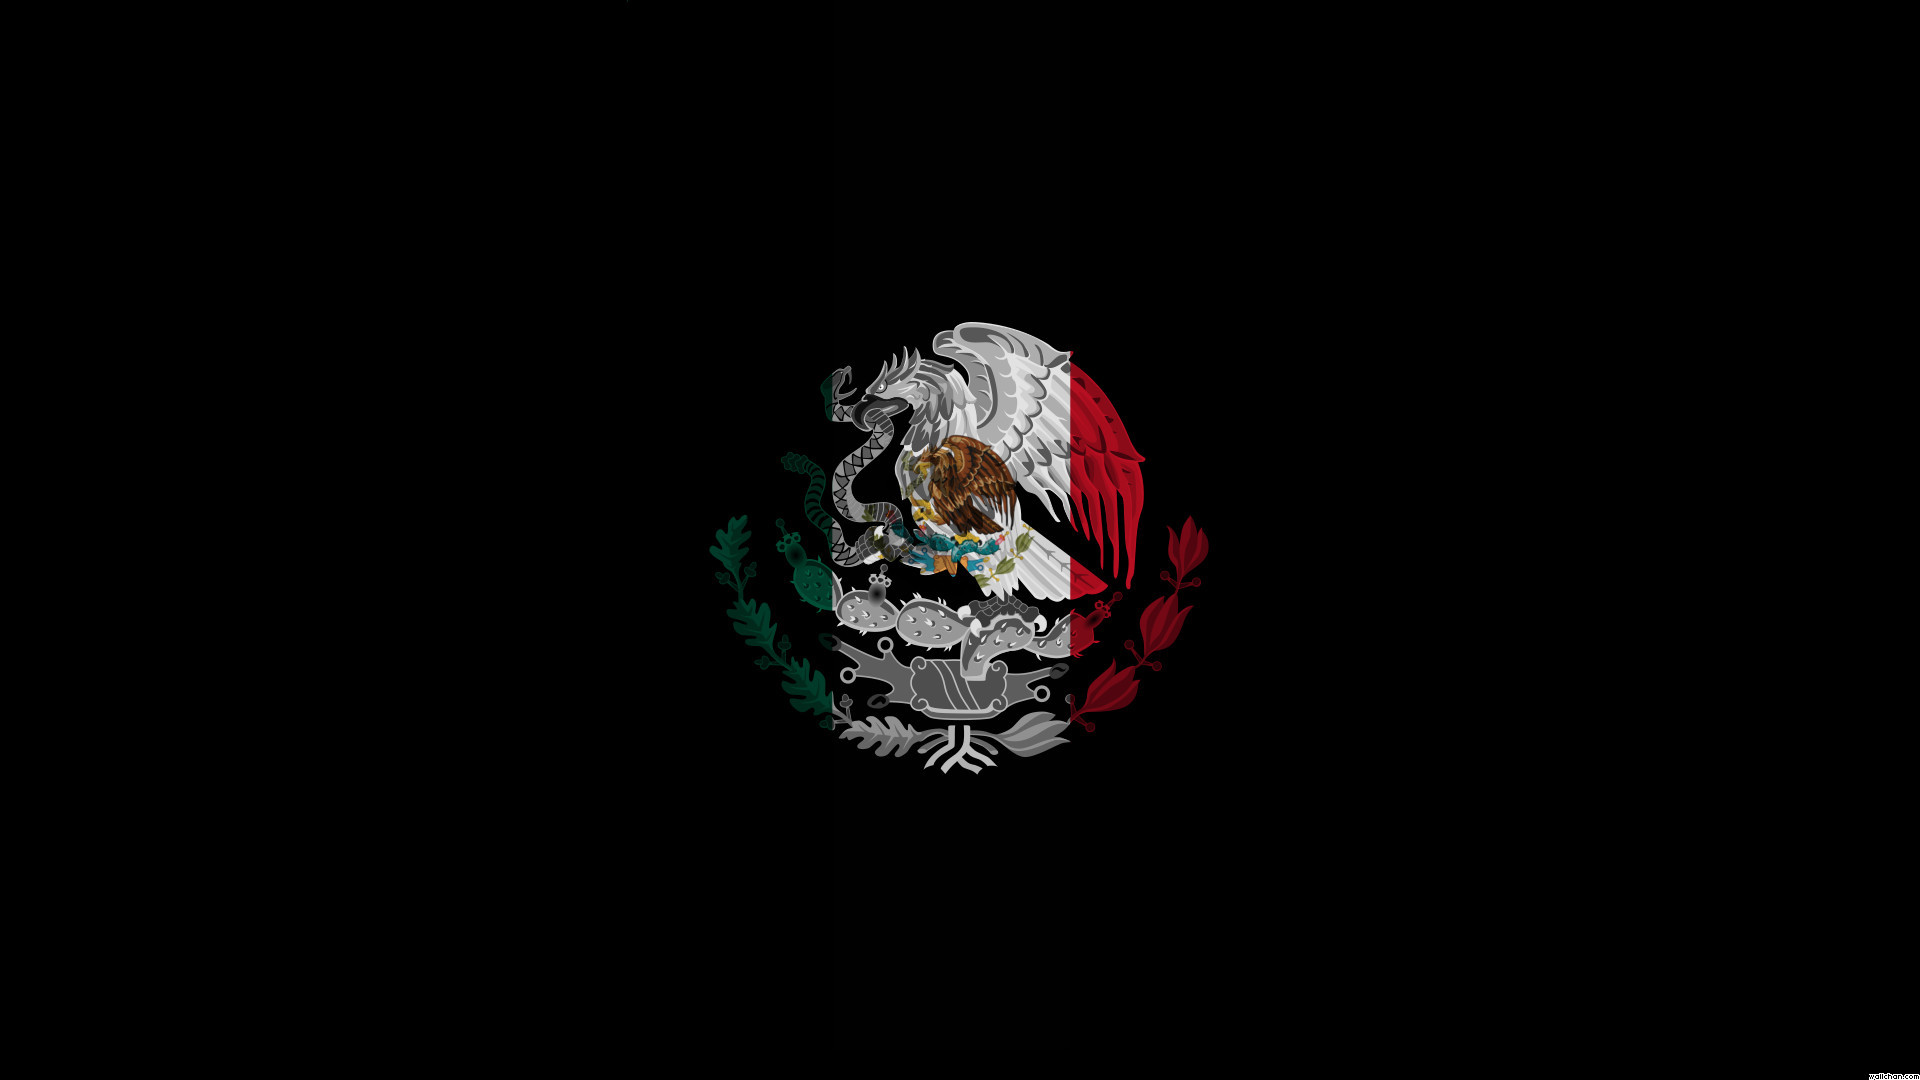 1920x1080  Mexico HD Wallpapers Backgrounds Wallpaper | HD Wallpapers |  Pinterest | Hd wallpaper, Wallpaper and Wallpaper backgrounds